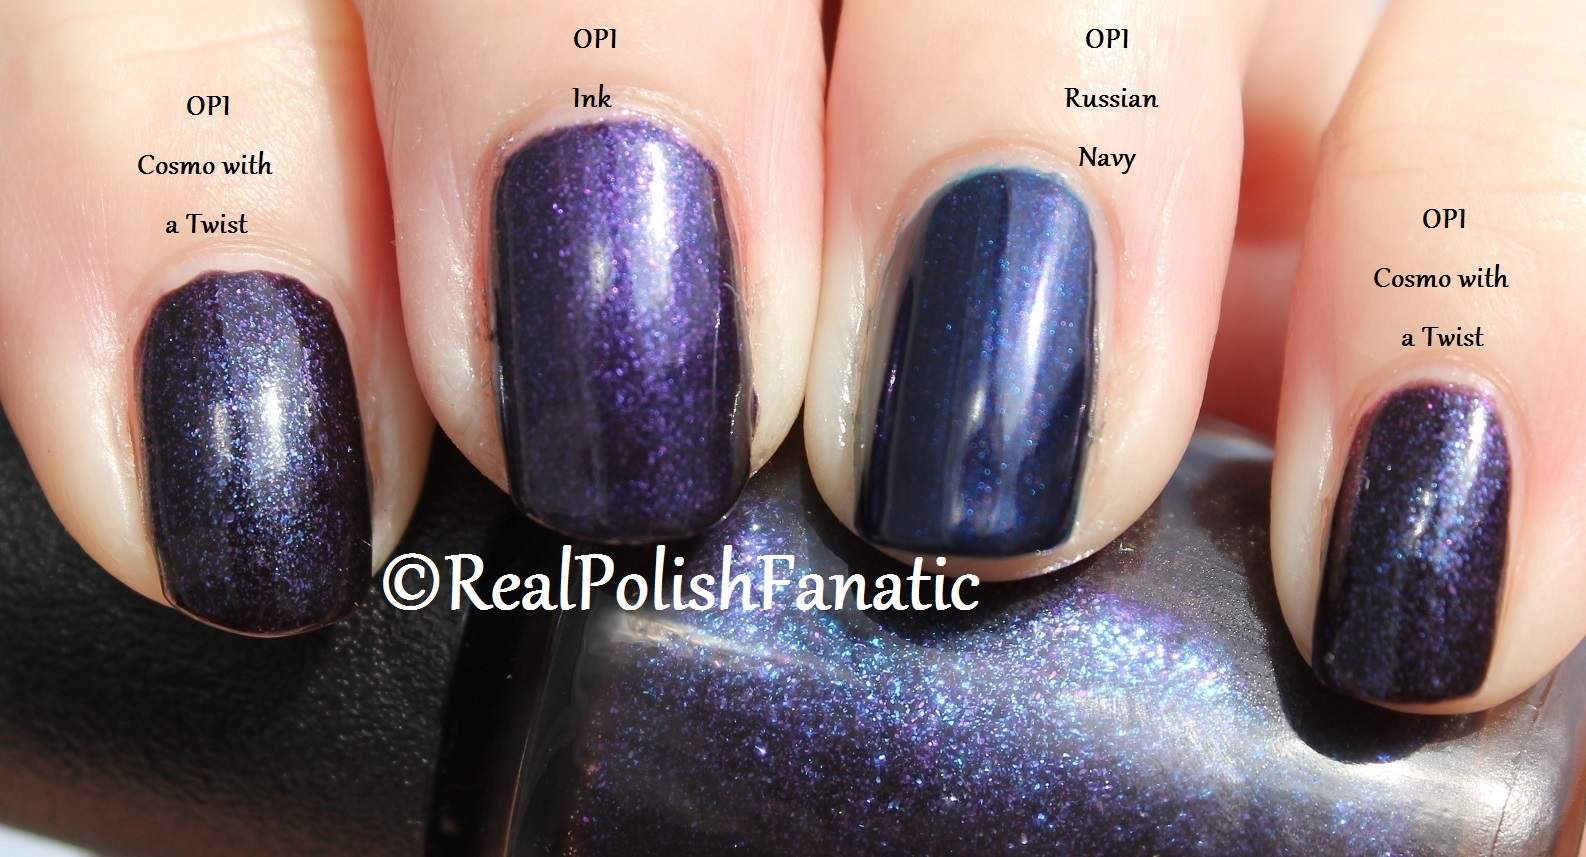 OPI Russian Navy – Swatch & Review – Helpless Whilst Drying